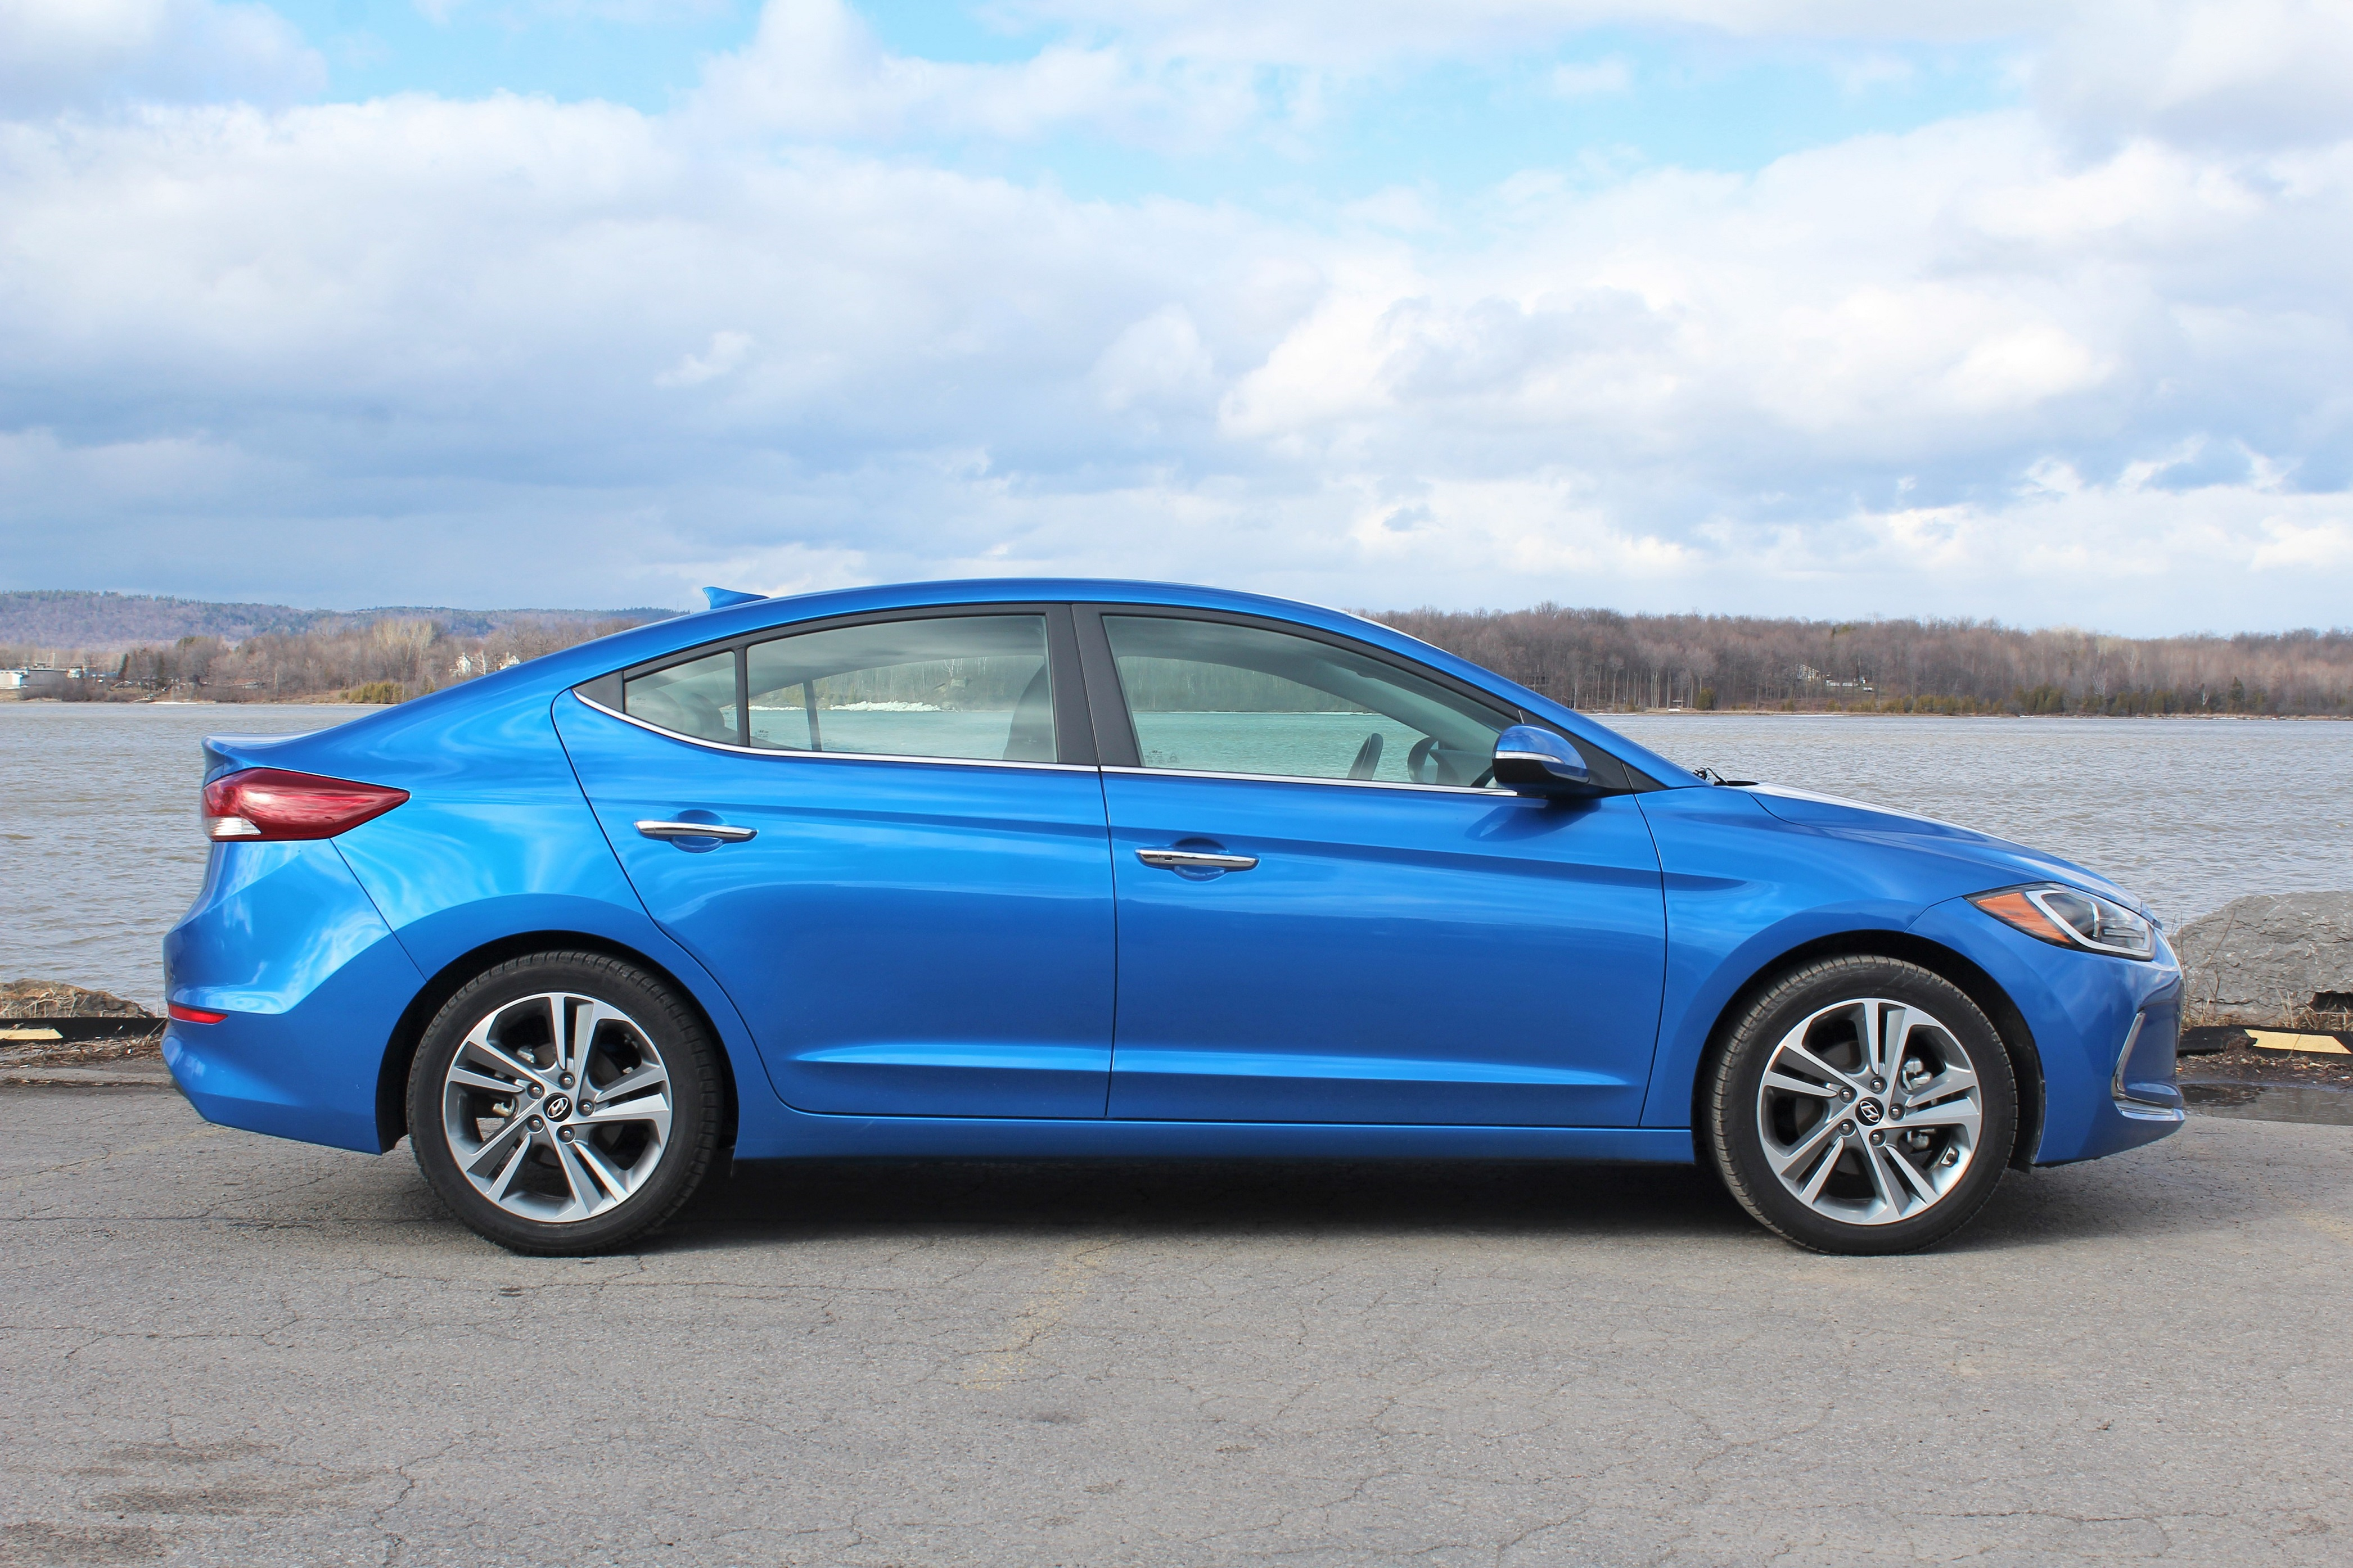 2017 Hyundai Elantra Limited Side Image 2016 Steph Willems The Truth About